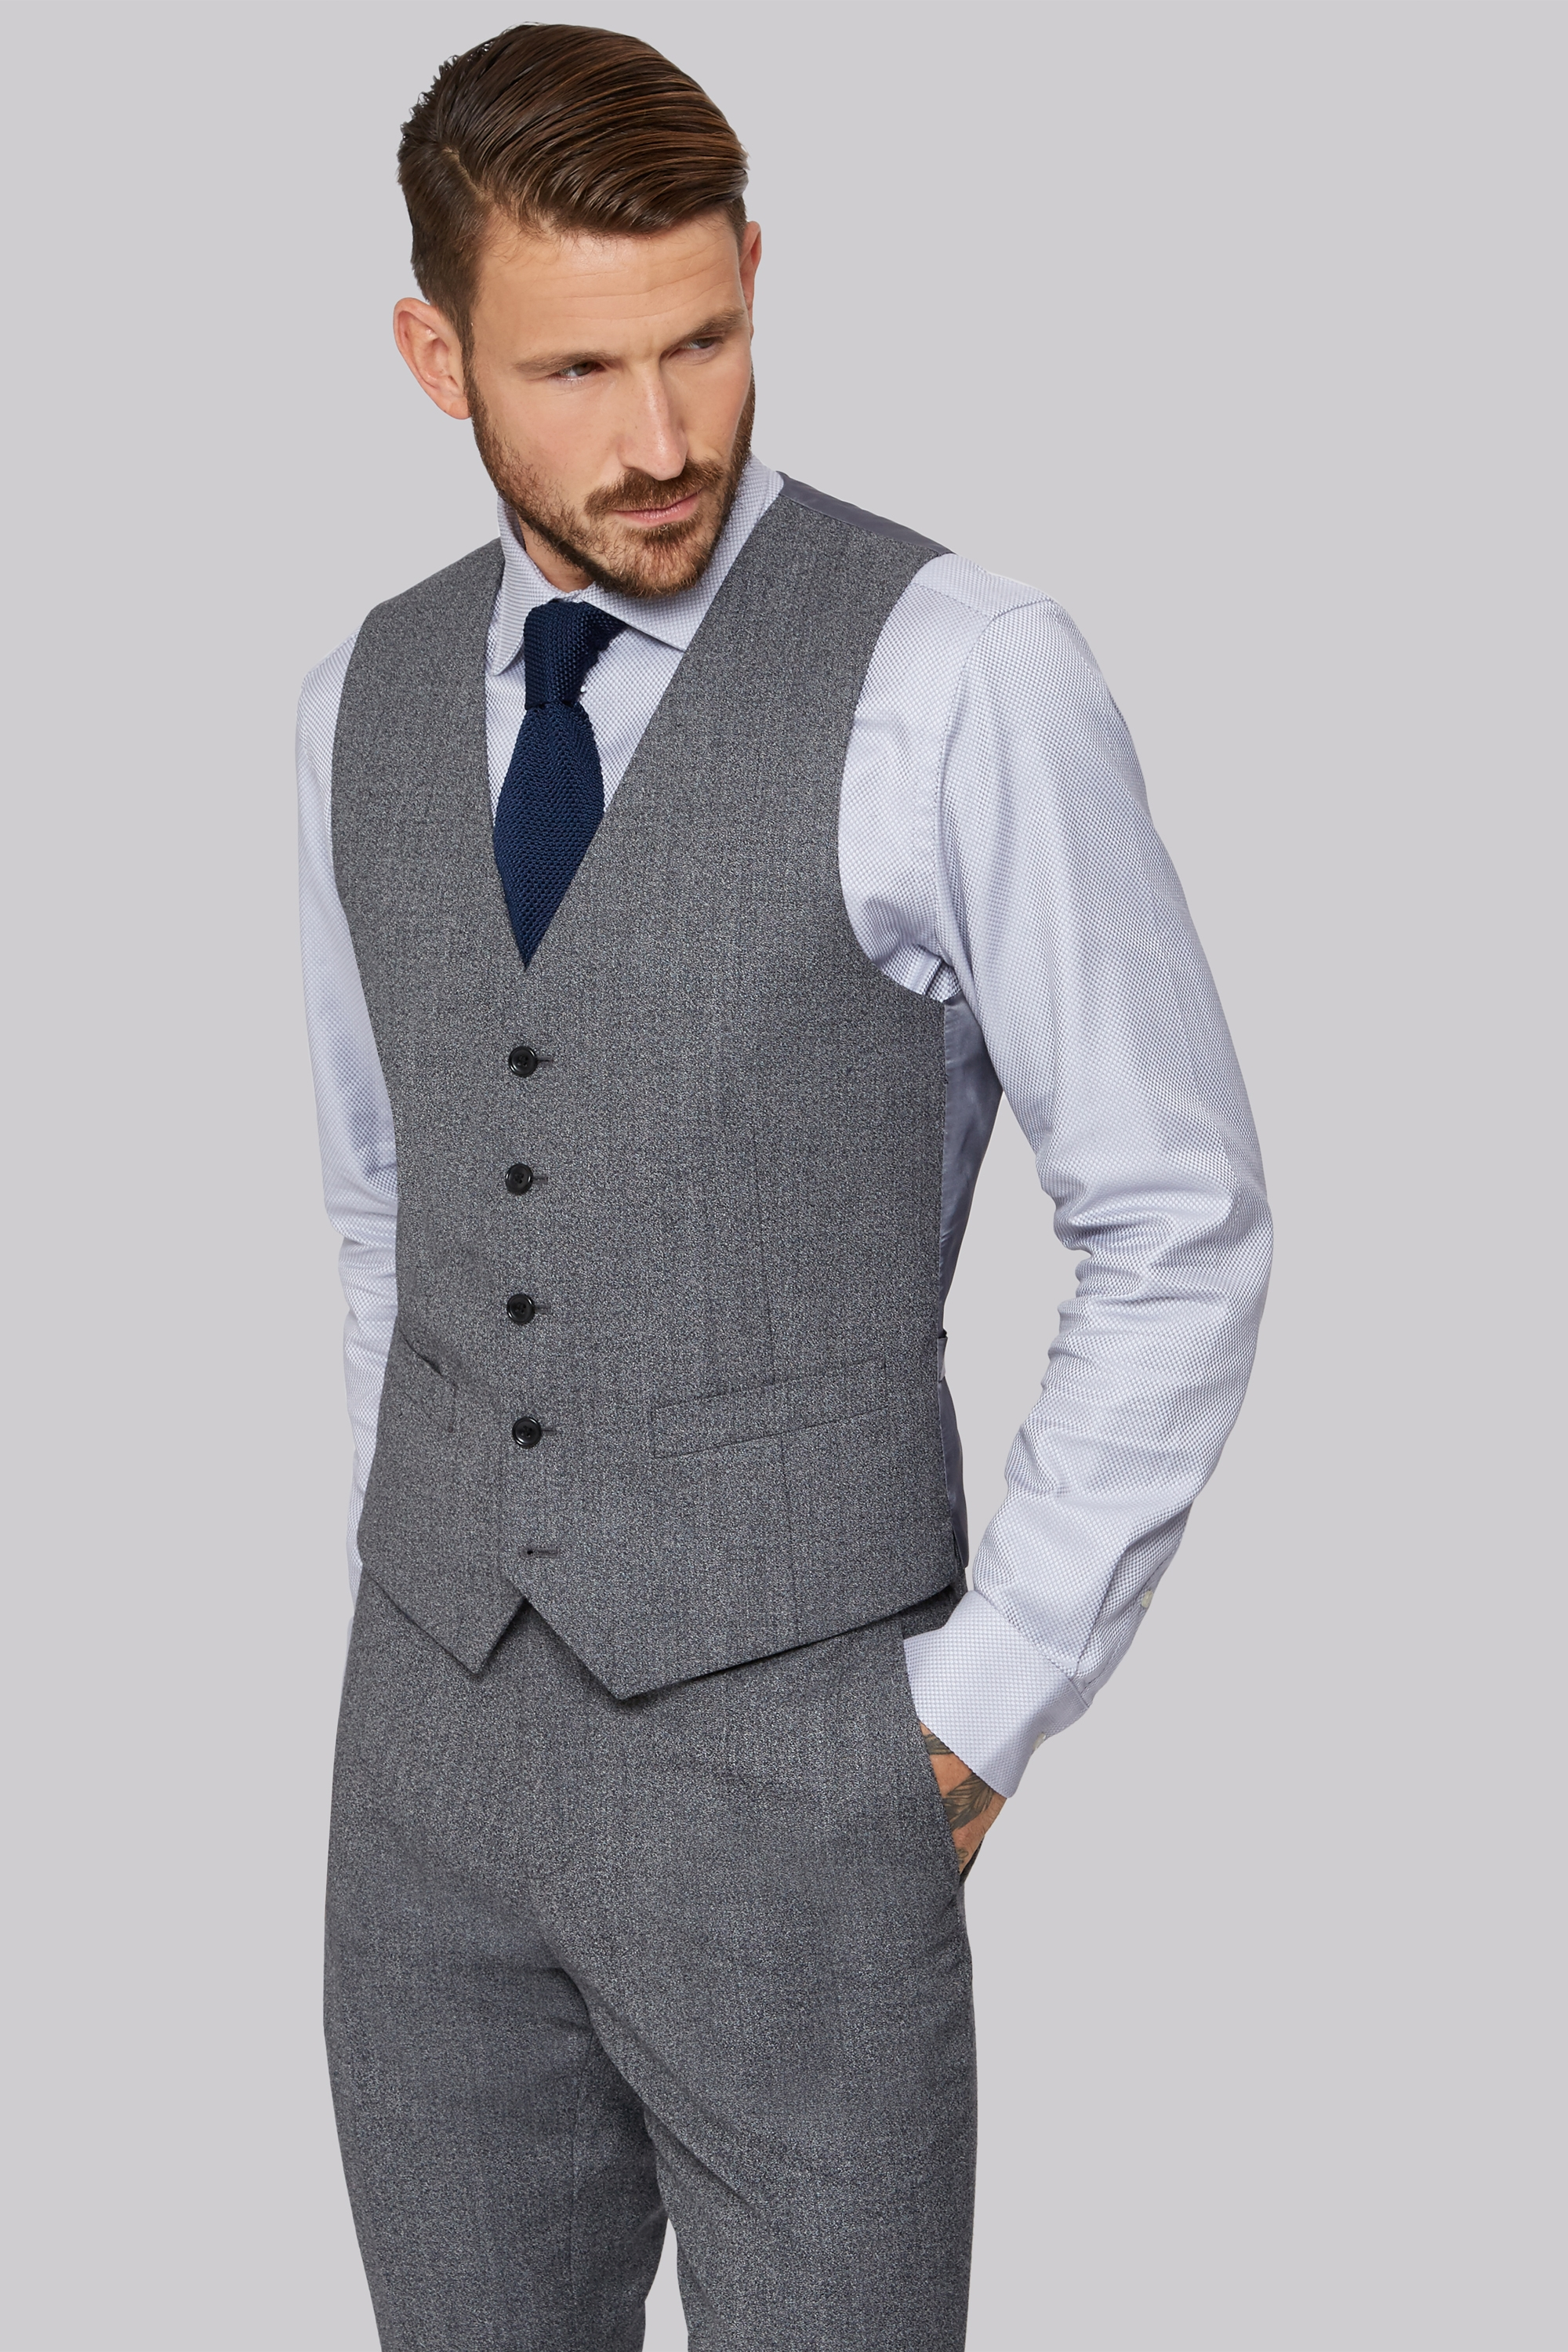 Cheap mens waistcoats - results from brands Ferrecci, Unique Bargains, Ted Baker, products like Ferrecci Mens Top Designed Casual & Formal Fitted Light Grey Dress Vest Waistcoat, INC Men's Gray Herringbone Suit Vest, Belstaff Waistcoat Lightweight Technical Quilts .